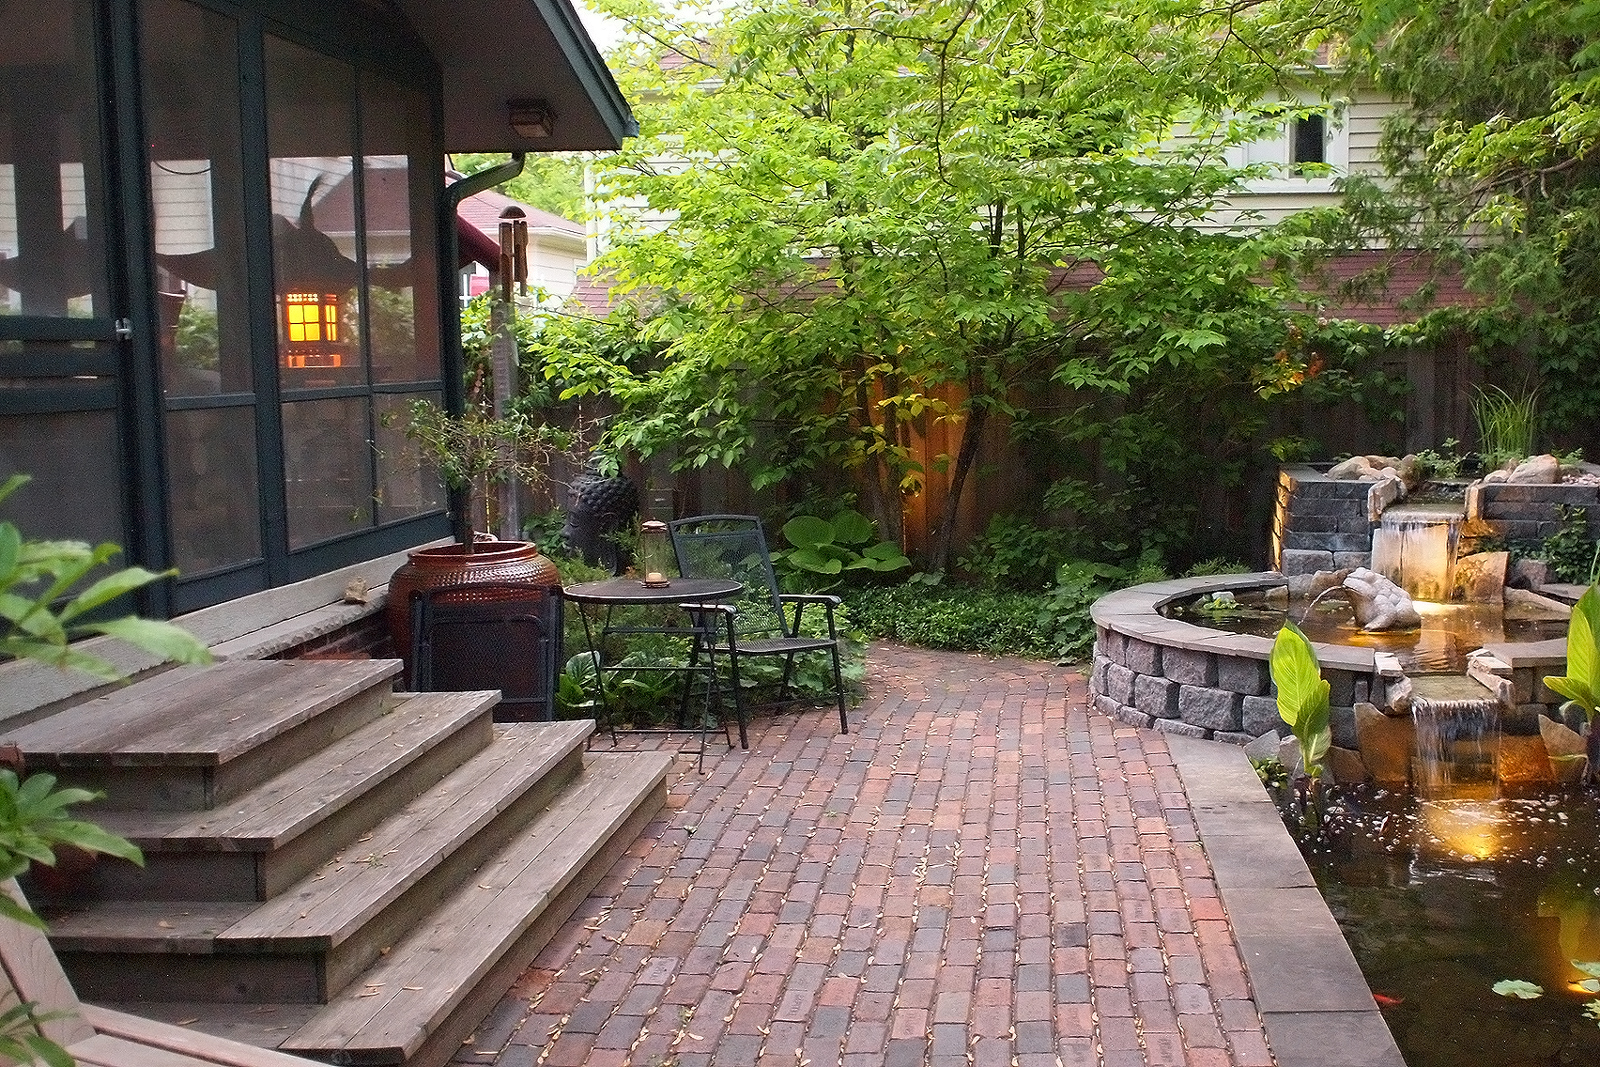 Paver Patio Ideas | Stone Patio Ideas | HouseLogic on Small Backyard Brick Patio Ideas id=48507